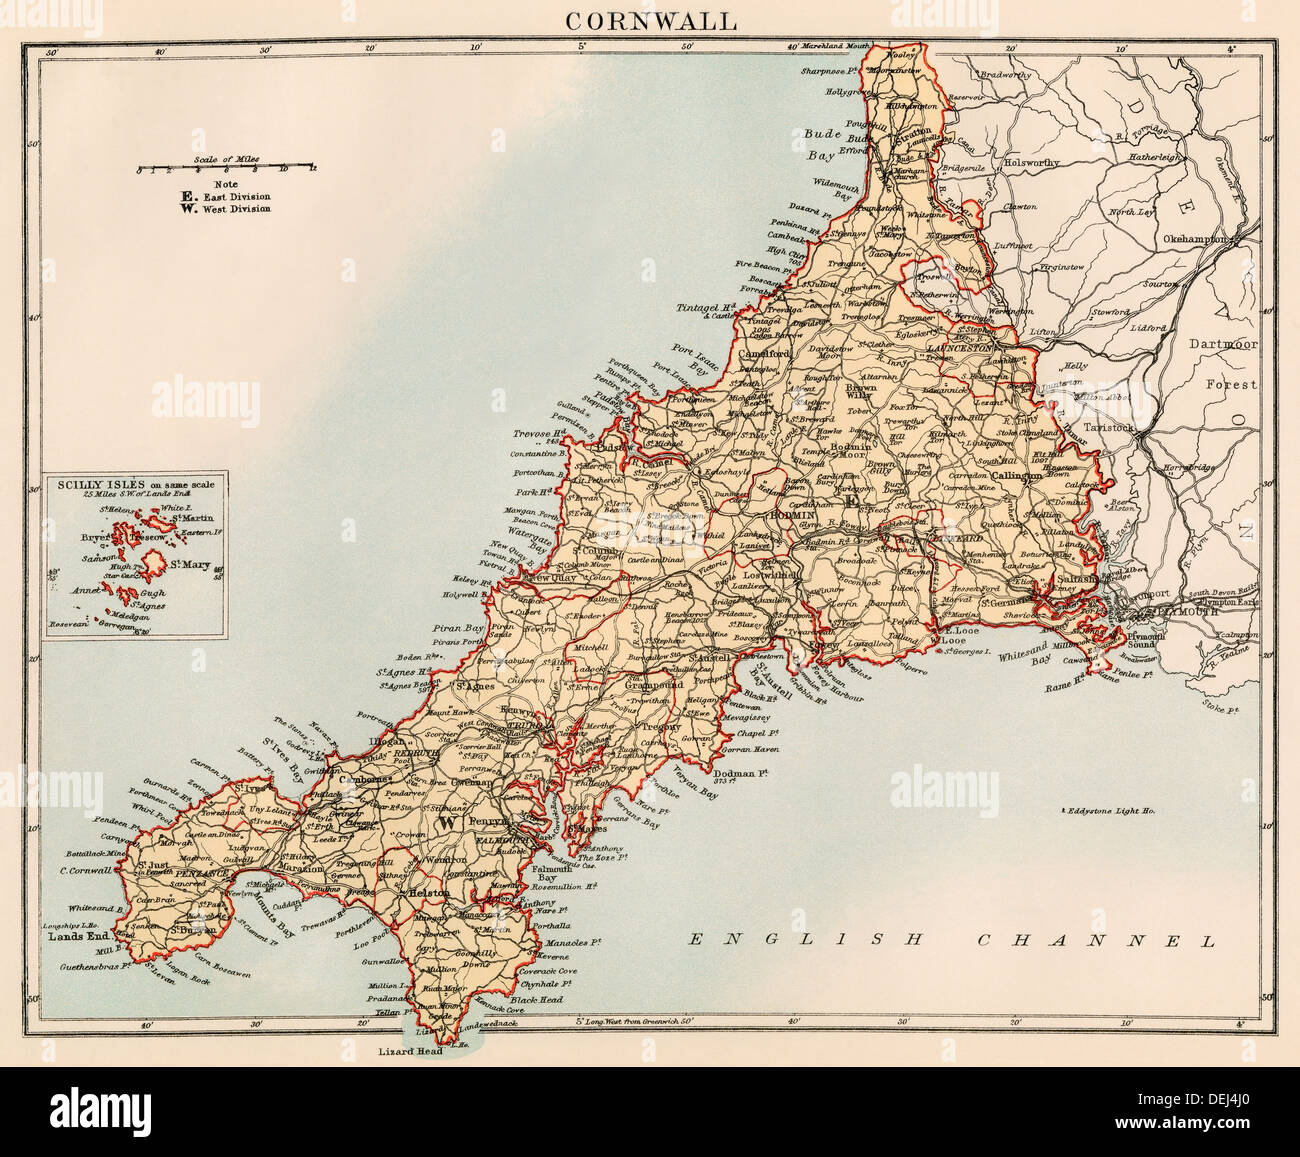 Map Of England Cornwall.Map Of Cornwall England 1870s Color Lithograph Stock Photo